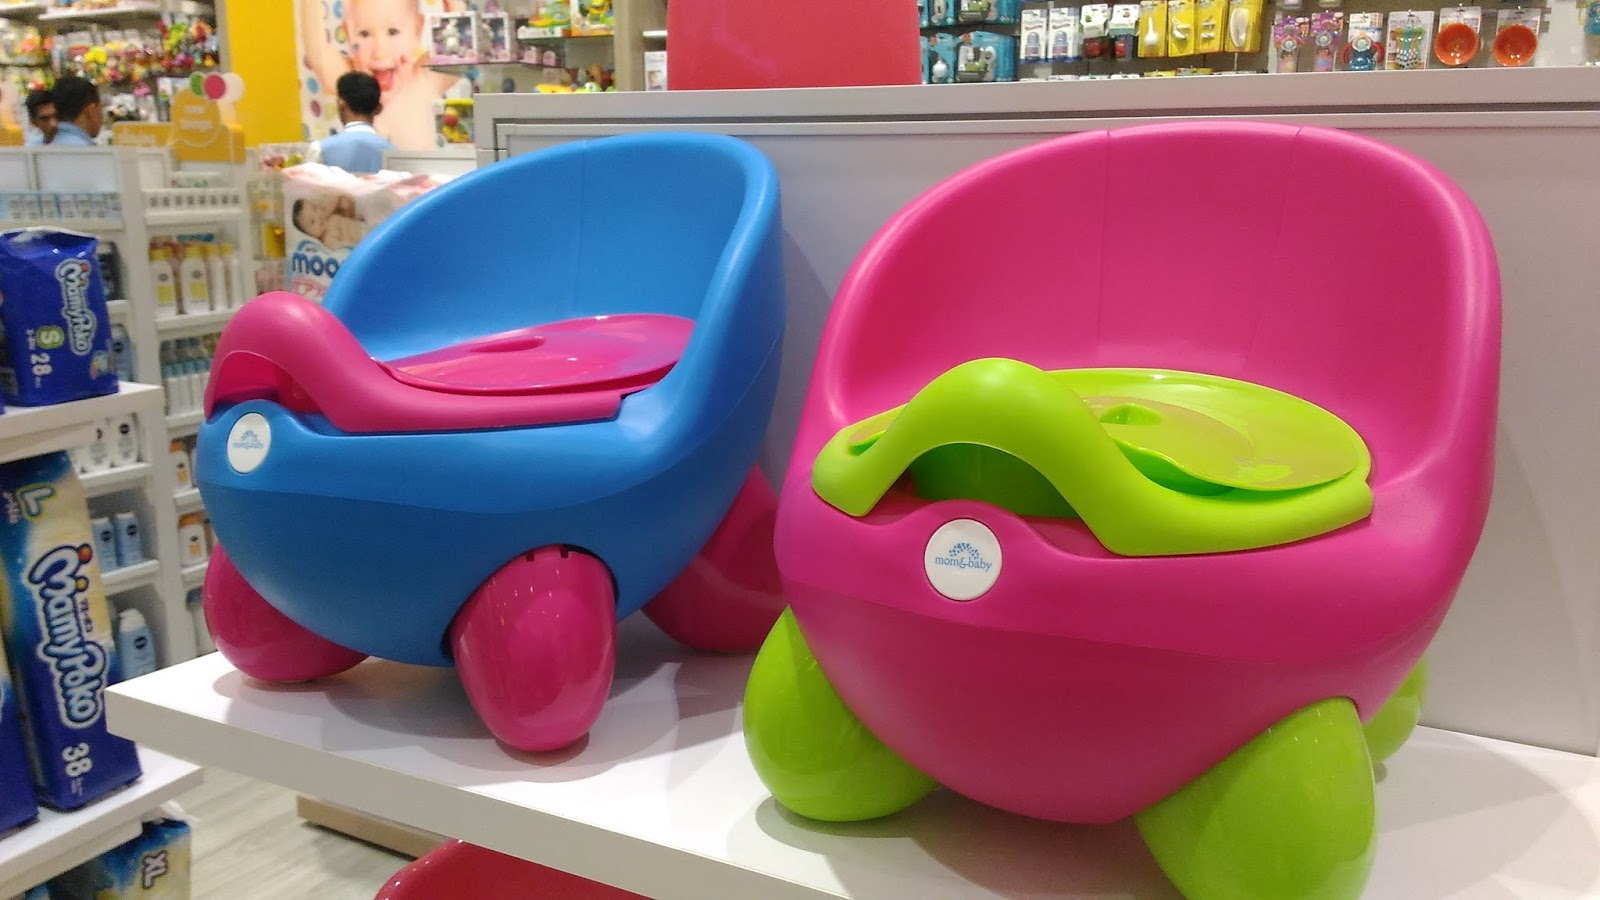 20 Exclusive Finds Baby Products and Brands at Baby Company by Cebu Blogger